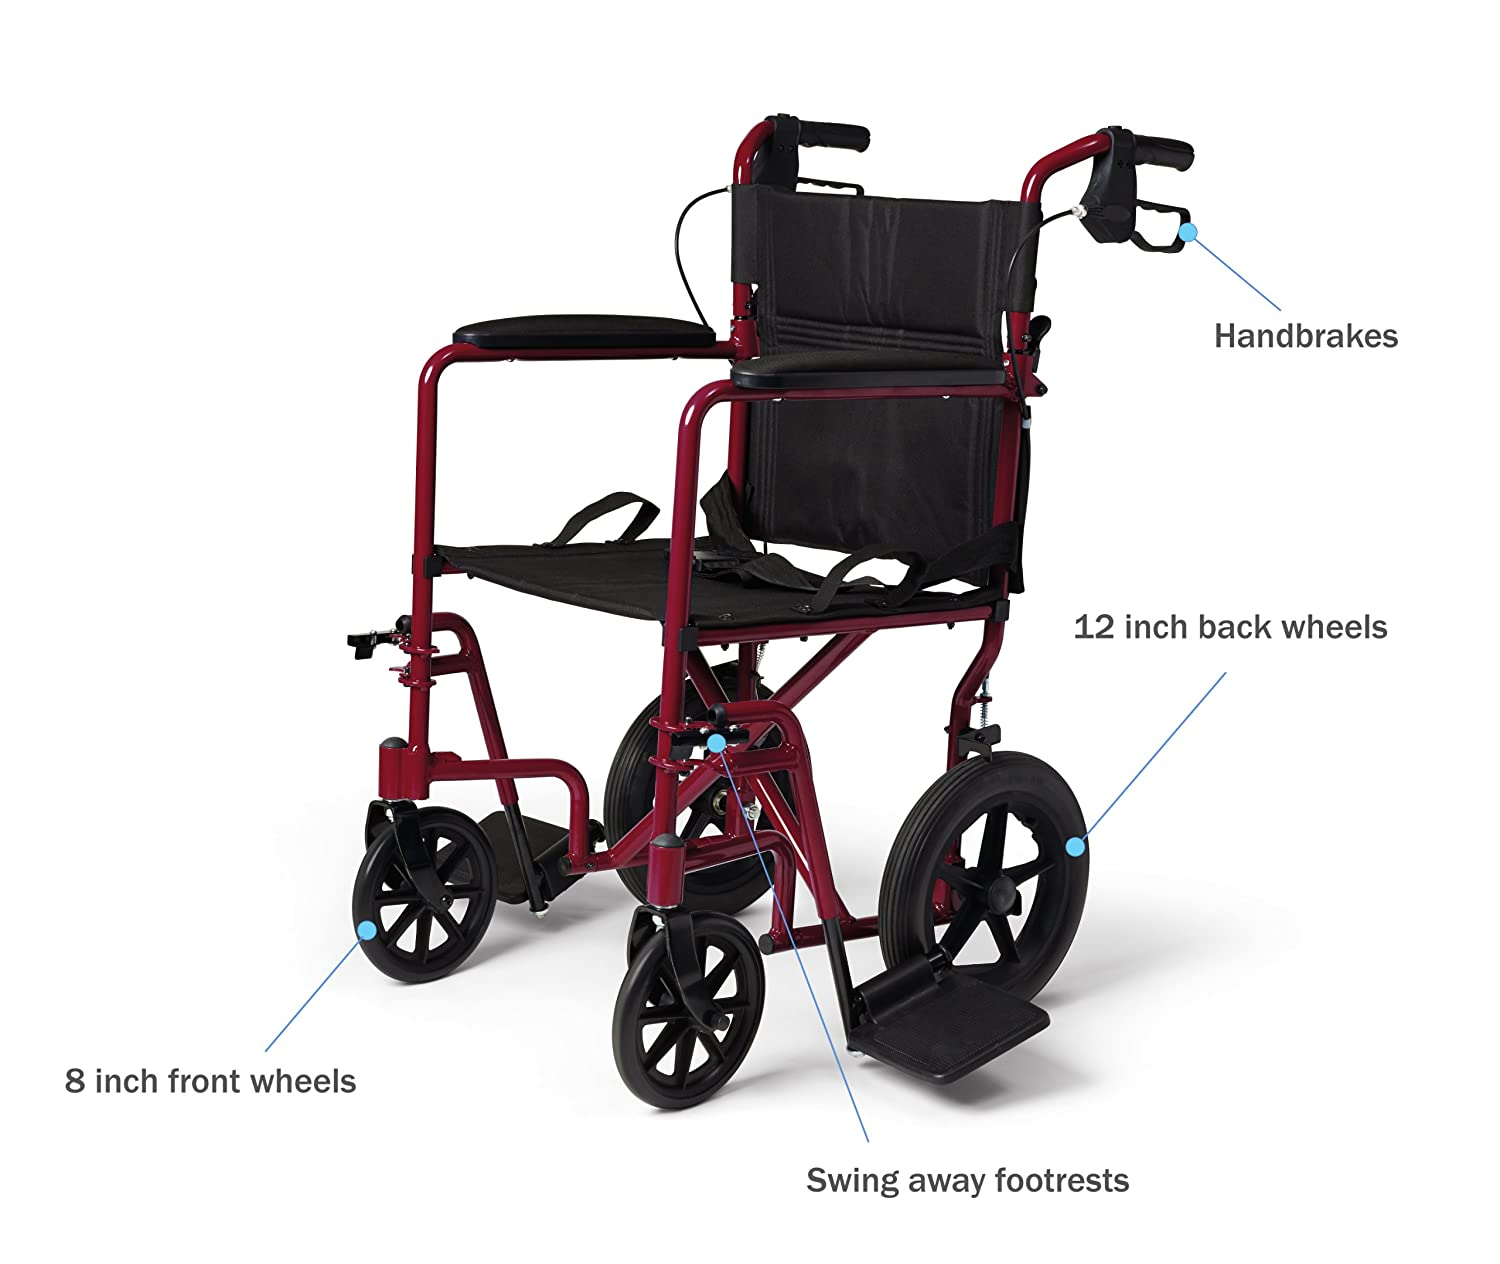 Transport chair amazon - Amazon Com Medline Lightweight Transport Adult Folding Wheelchair With Handbrakes Red Health Personal Care